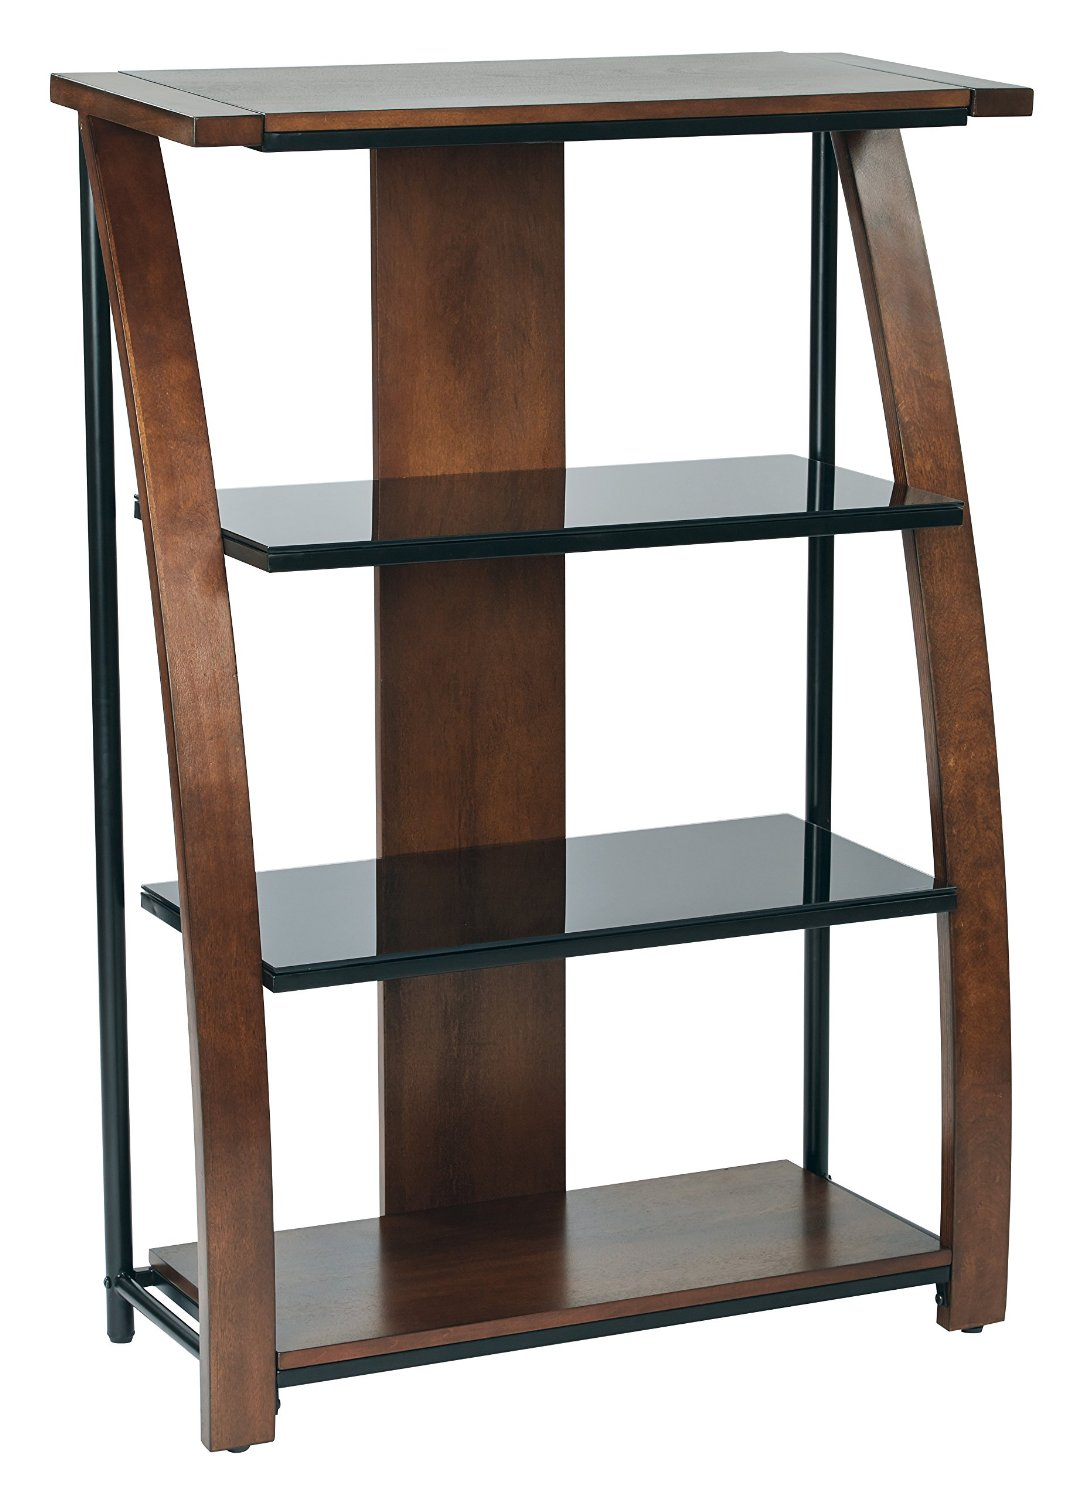 Office Star Emette Bookcase With Two Black Tempered Glass Shelves, Black Powder Coated Frame, and Cherry Finish Wood Accents